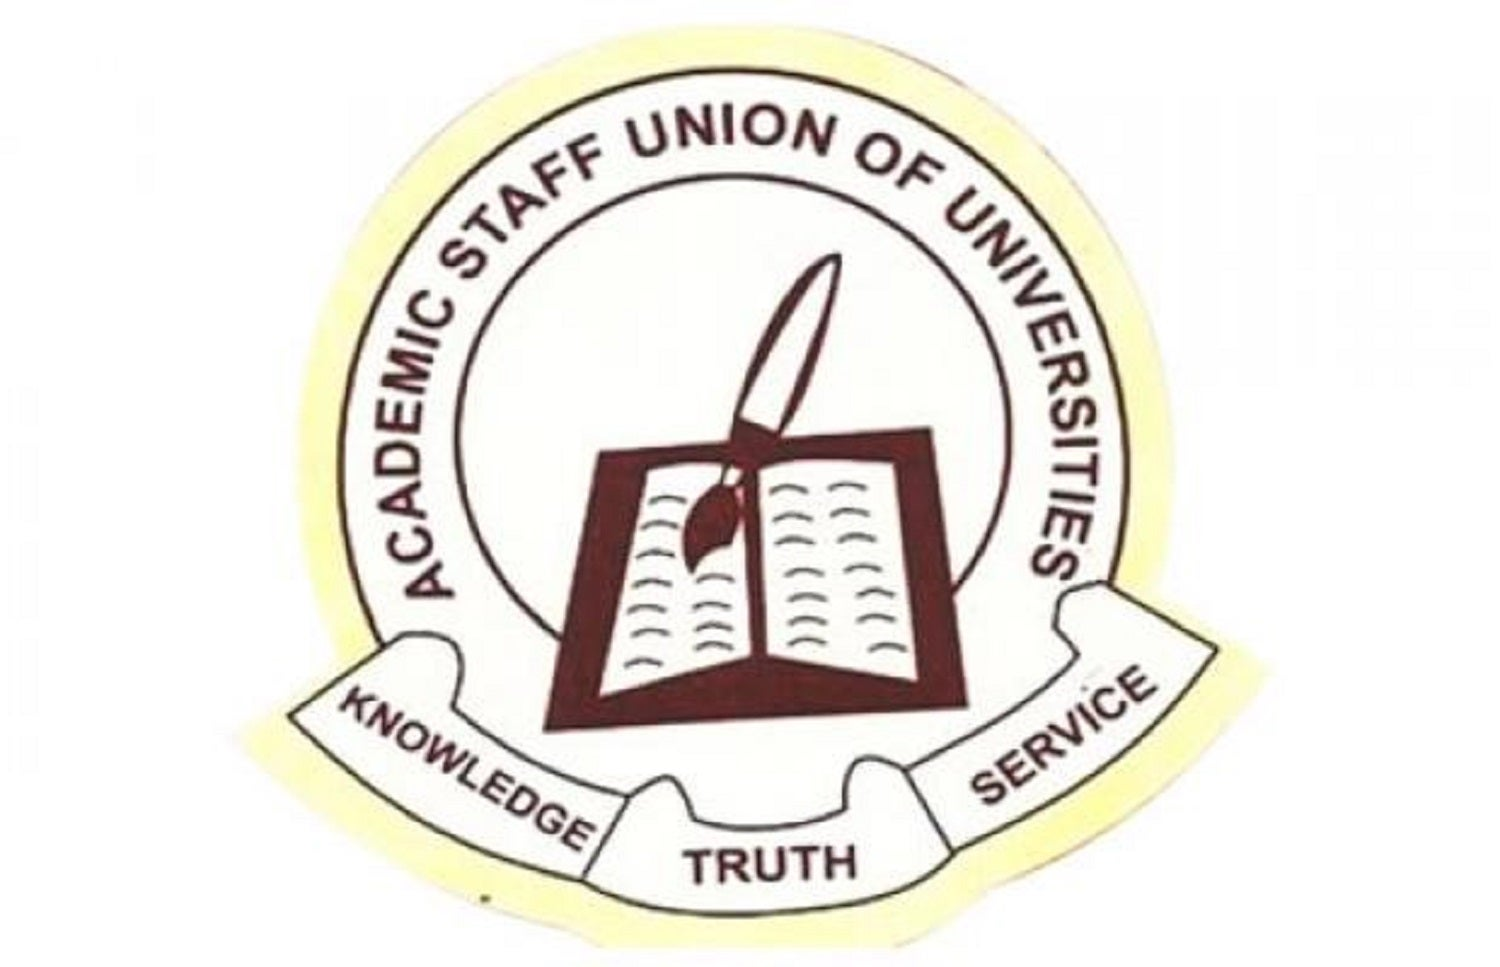 Academic activities may be disrupted as ASUU threatens to down tools again